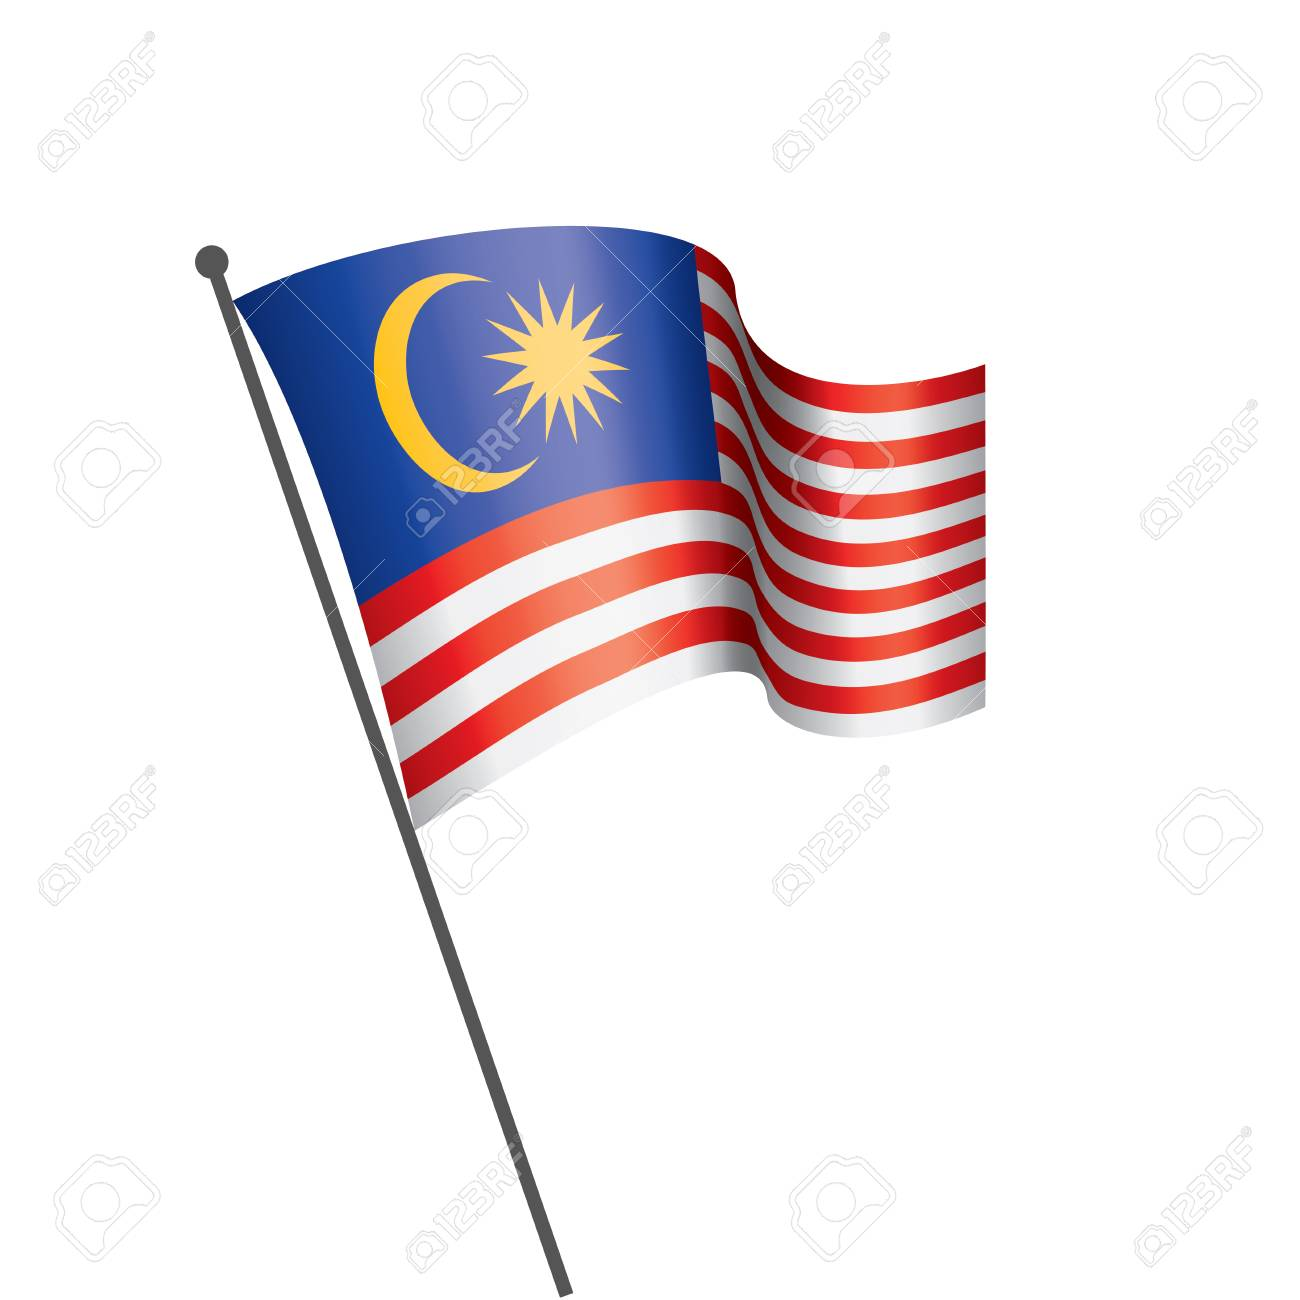 Malaysia flag, vector illustration on a white background - 112236854